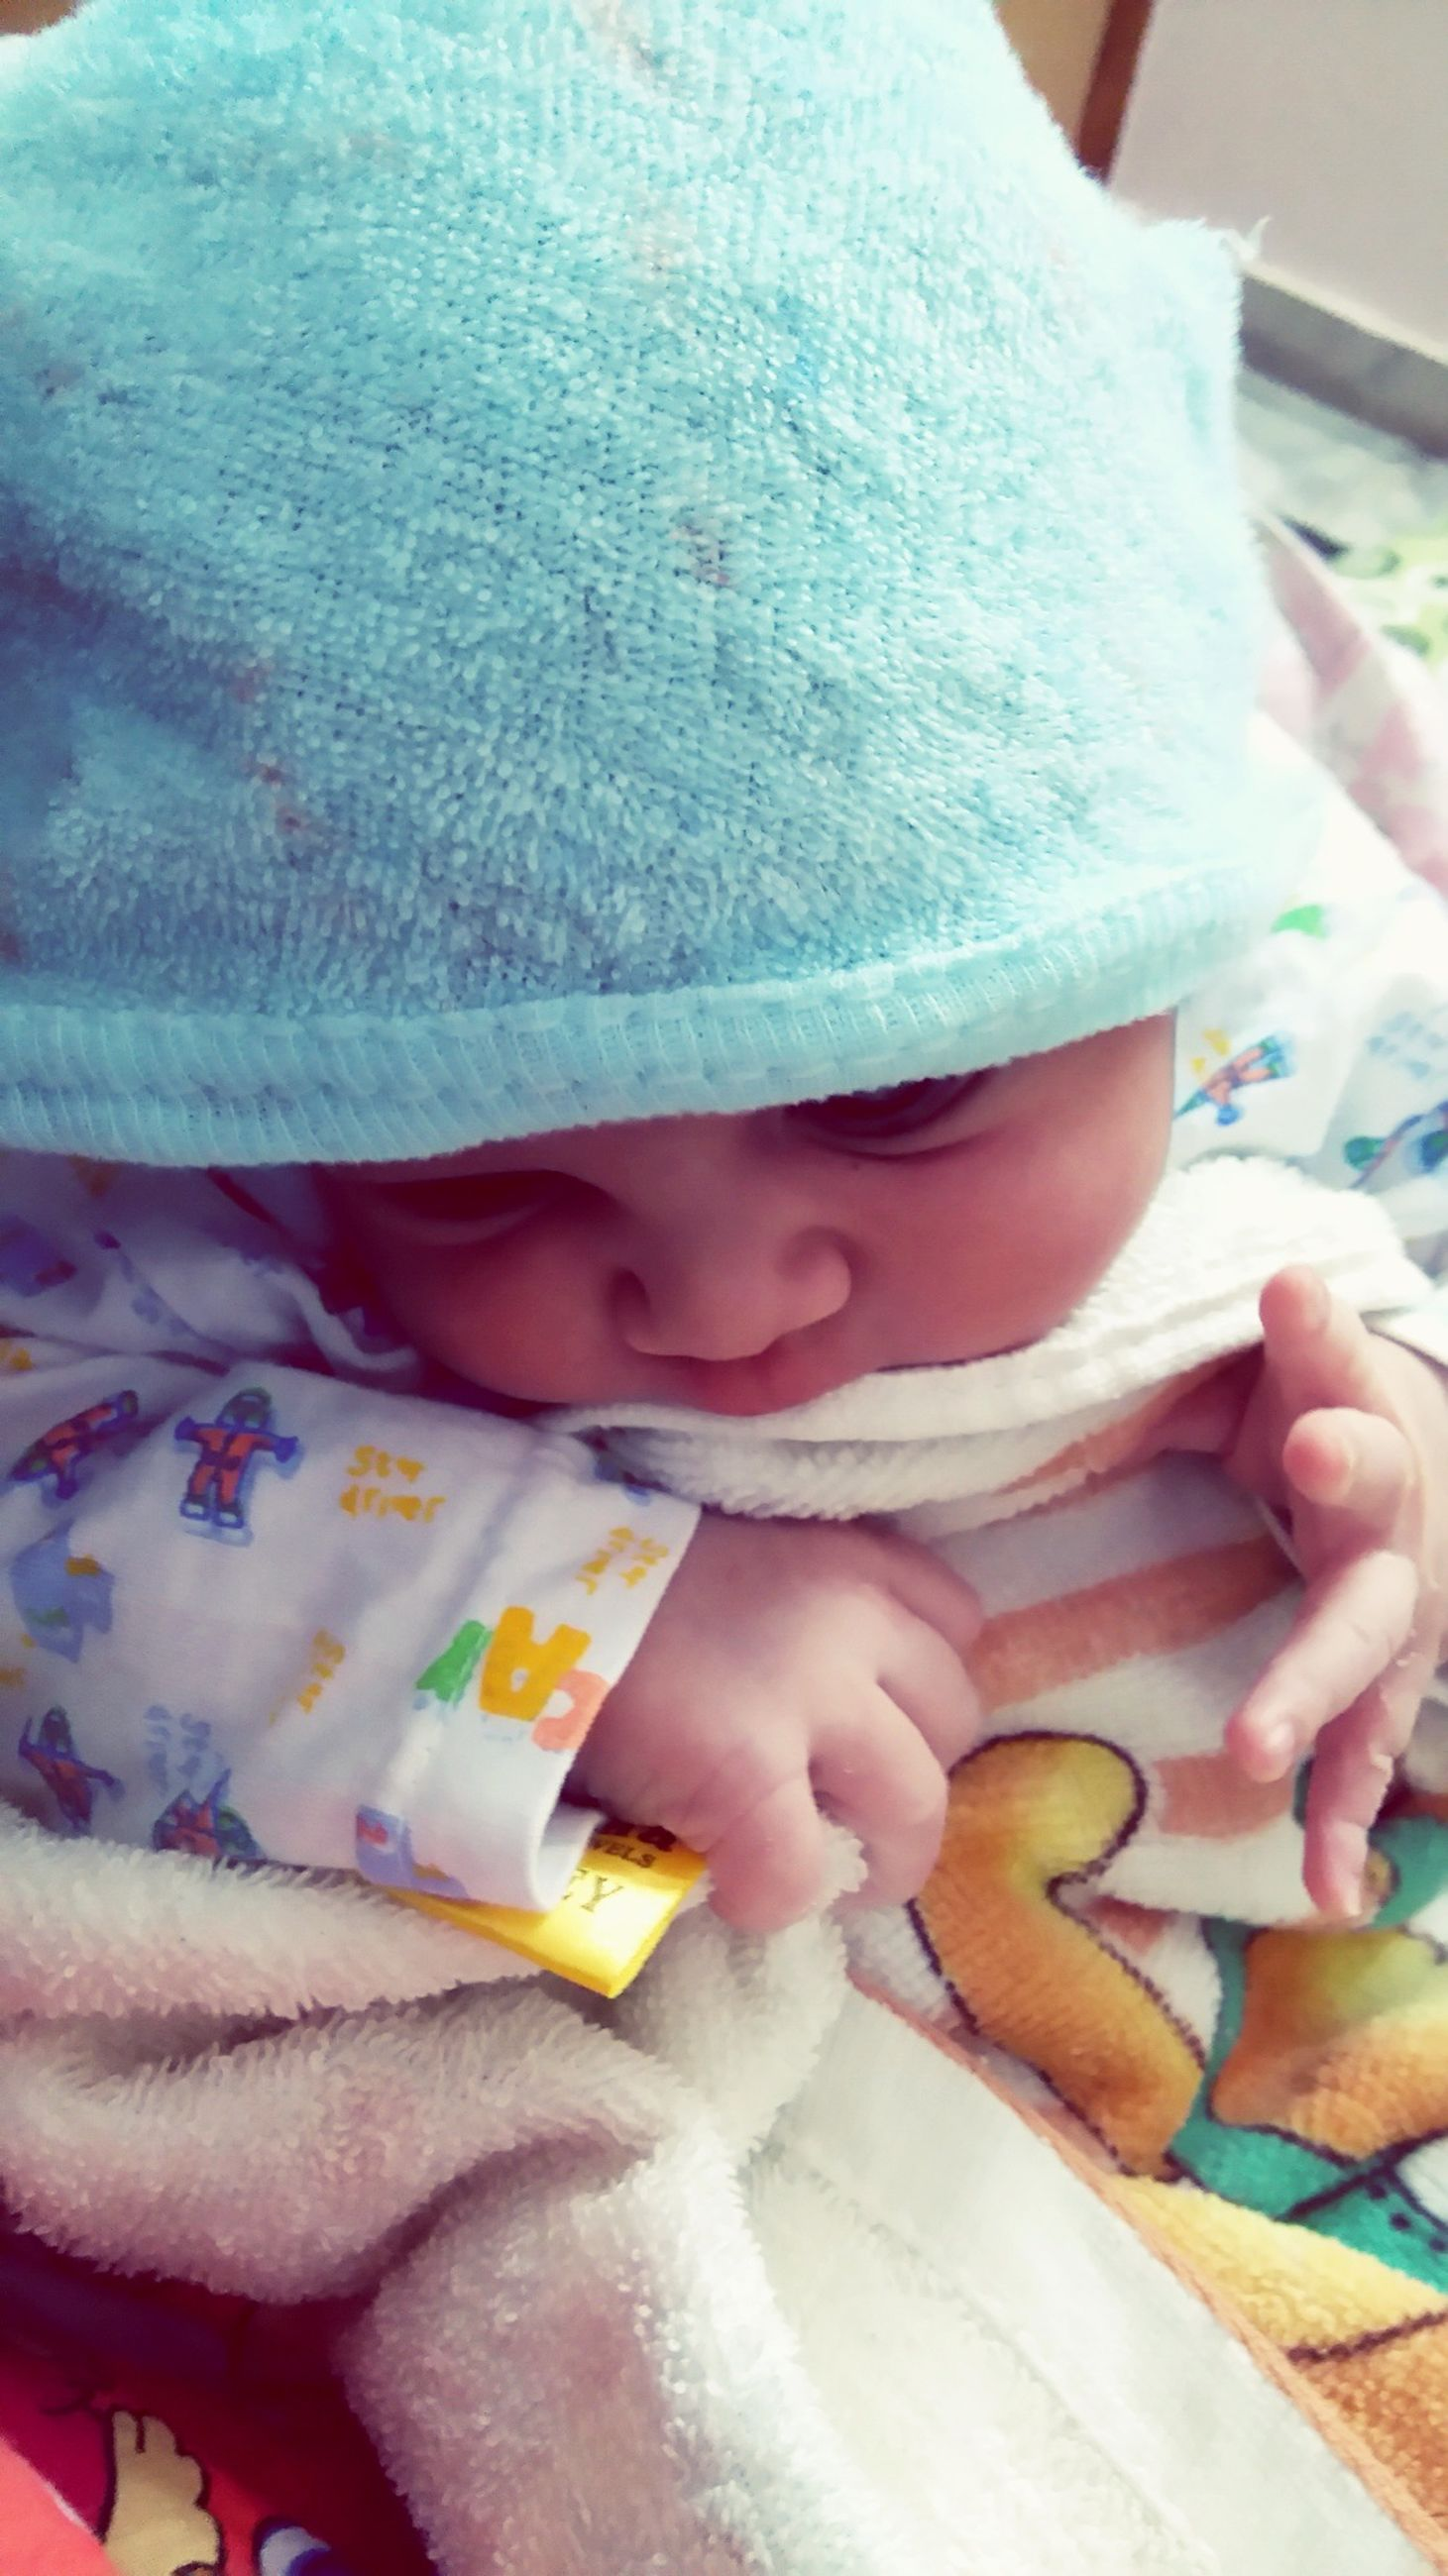 baby, babyhood, one person, indoors, real people, childhood, newborn, babies only, close-up, day, human hand, people